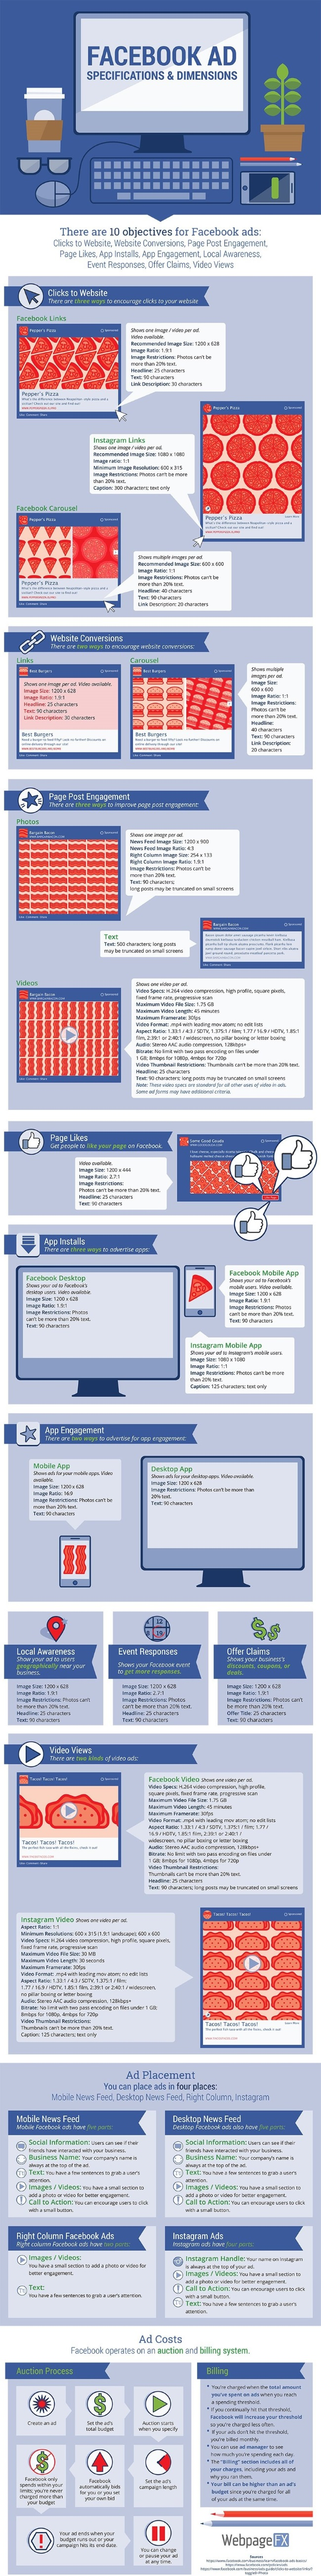 facebook-ads-specification-dimensions